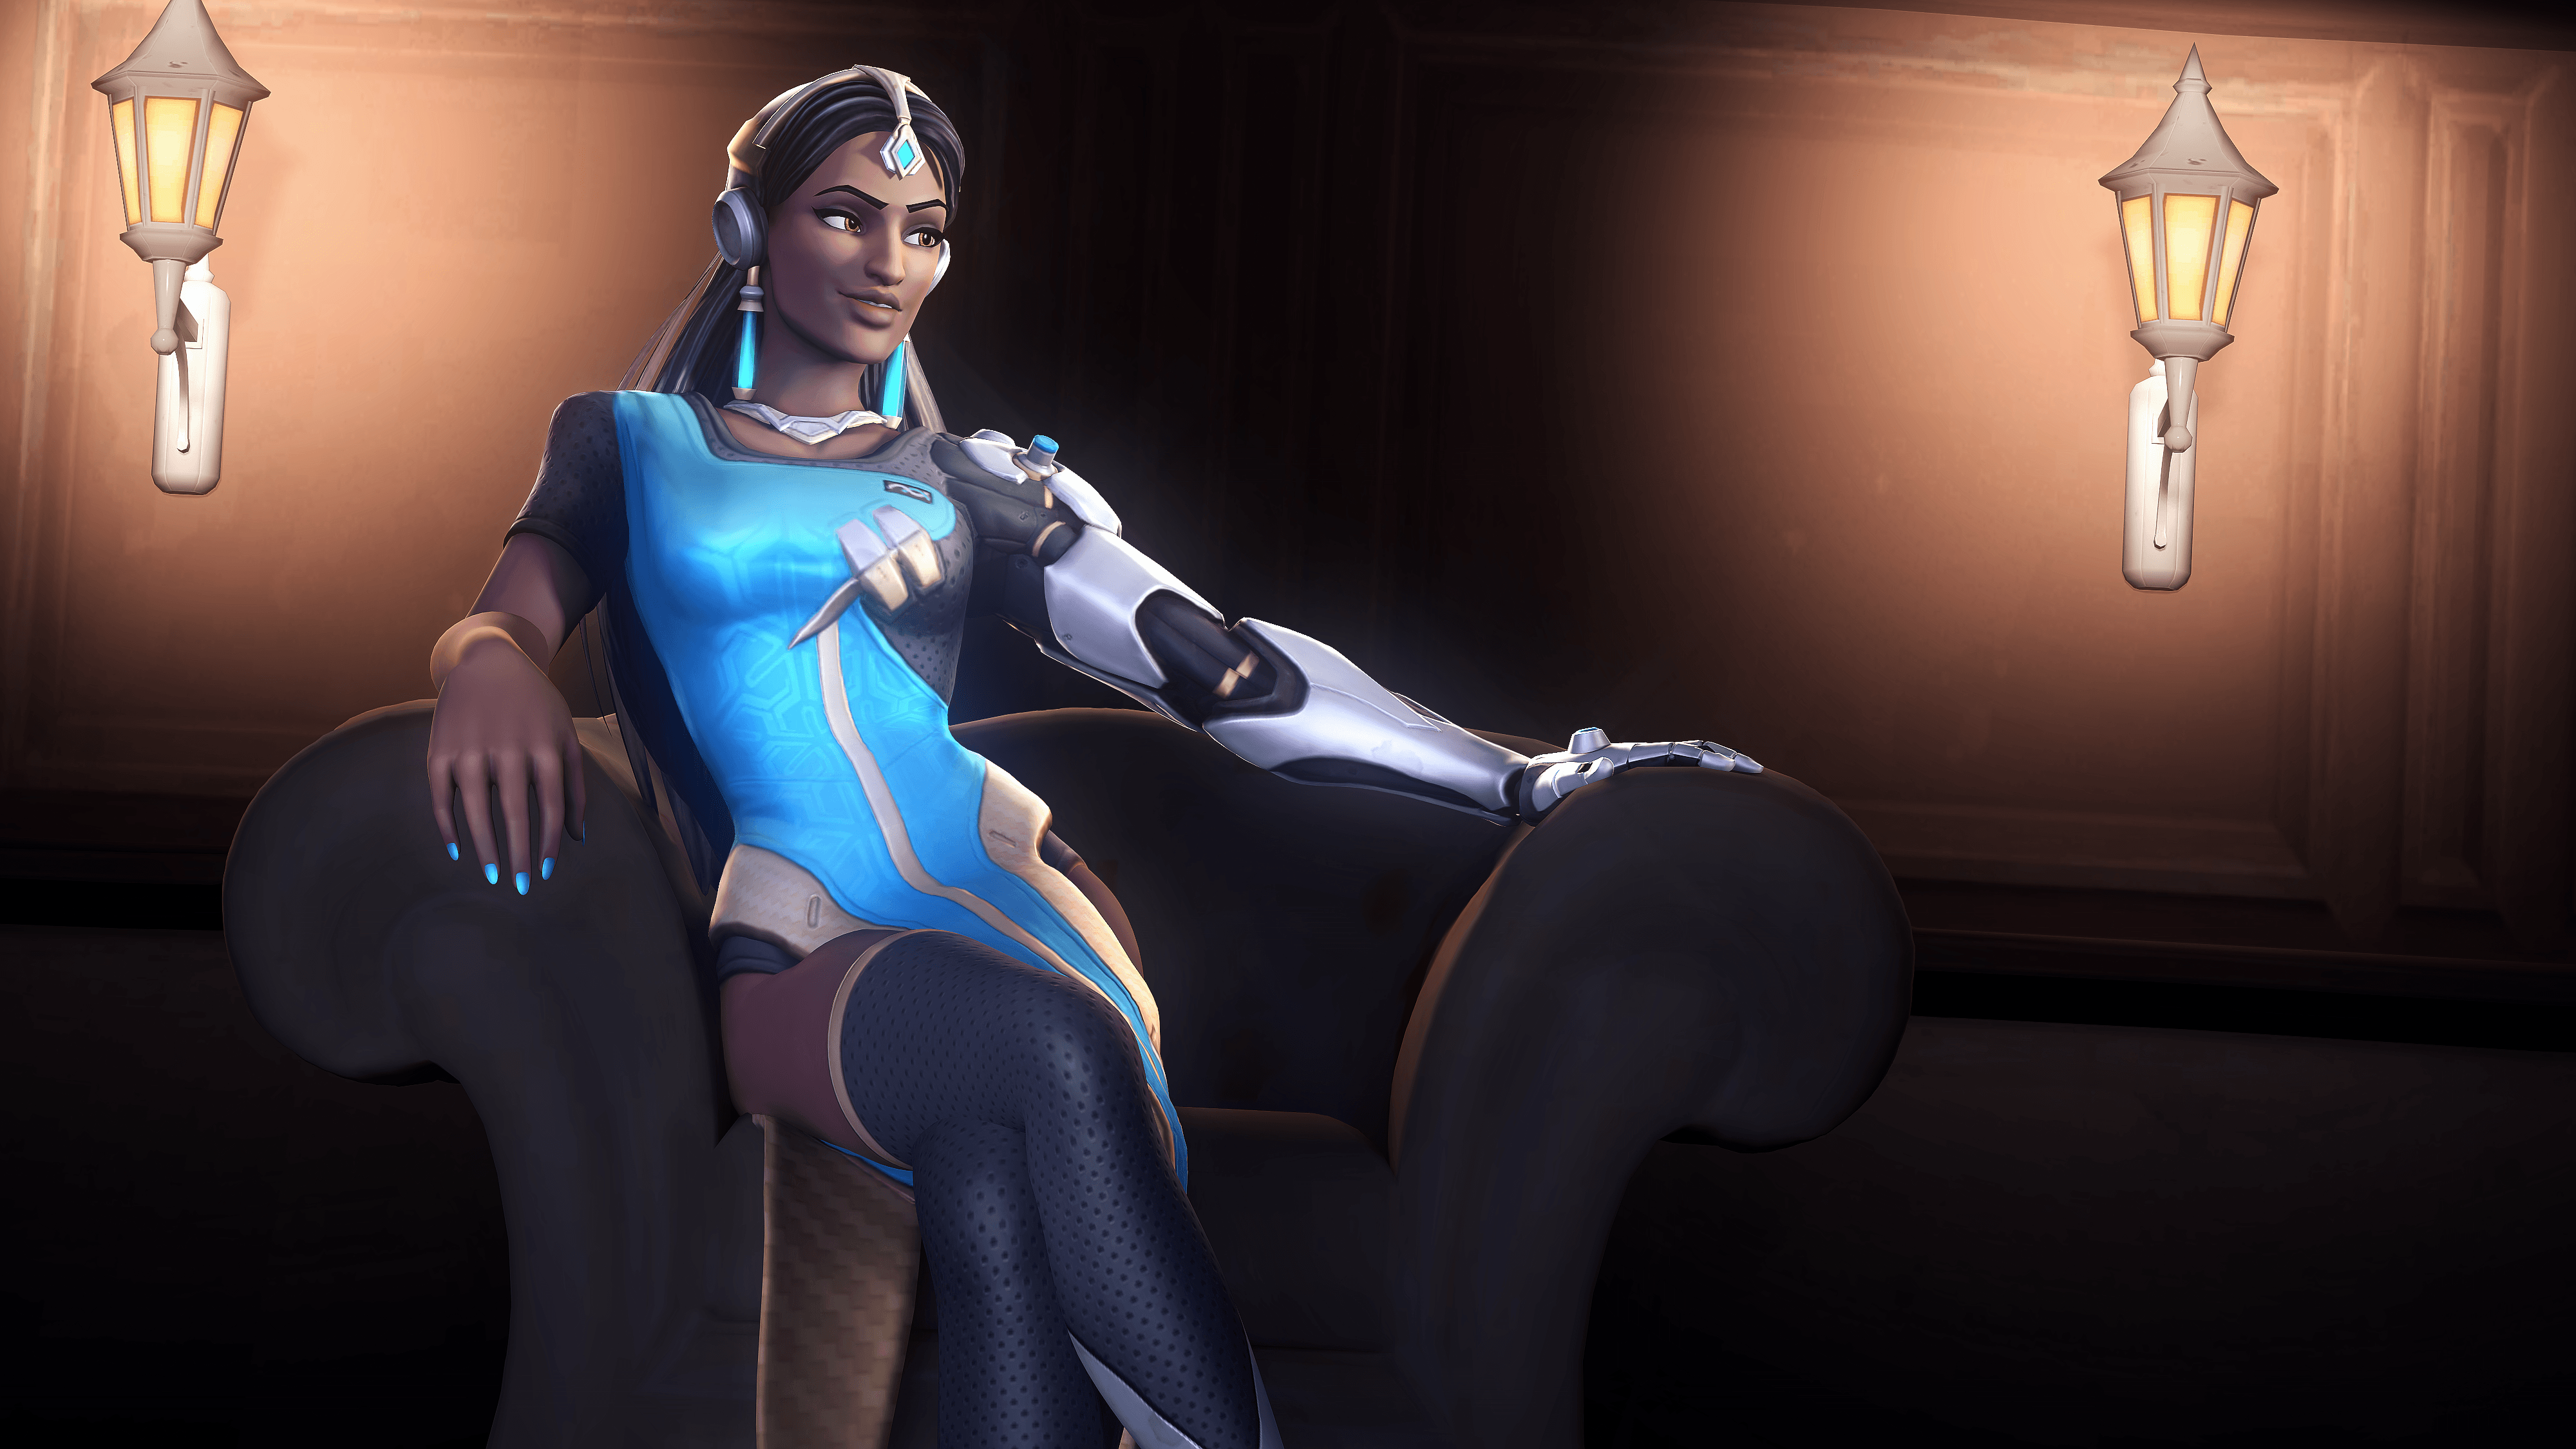 Download New Symmetra Wallpaper High Quality Resolution #Rob